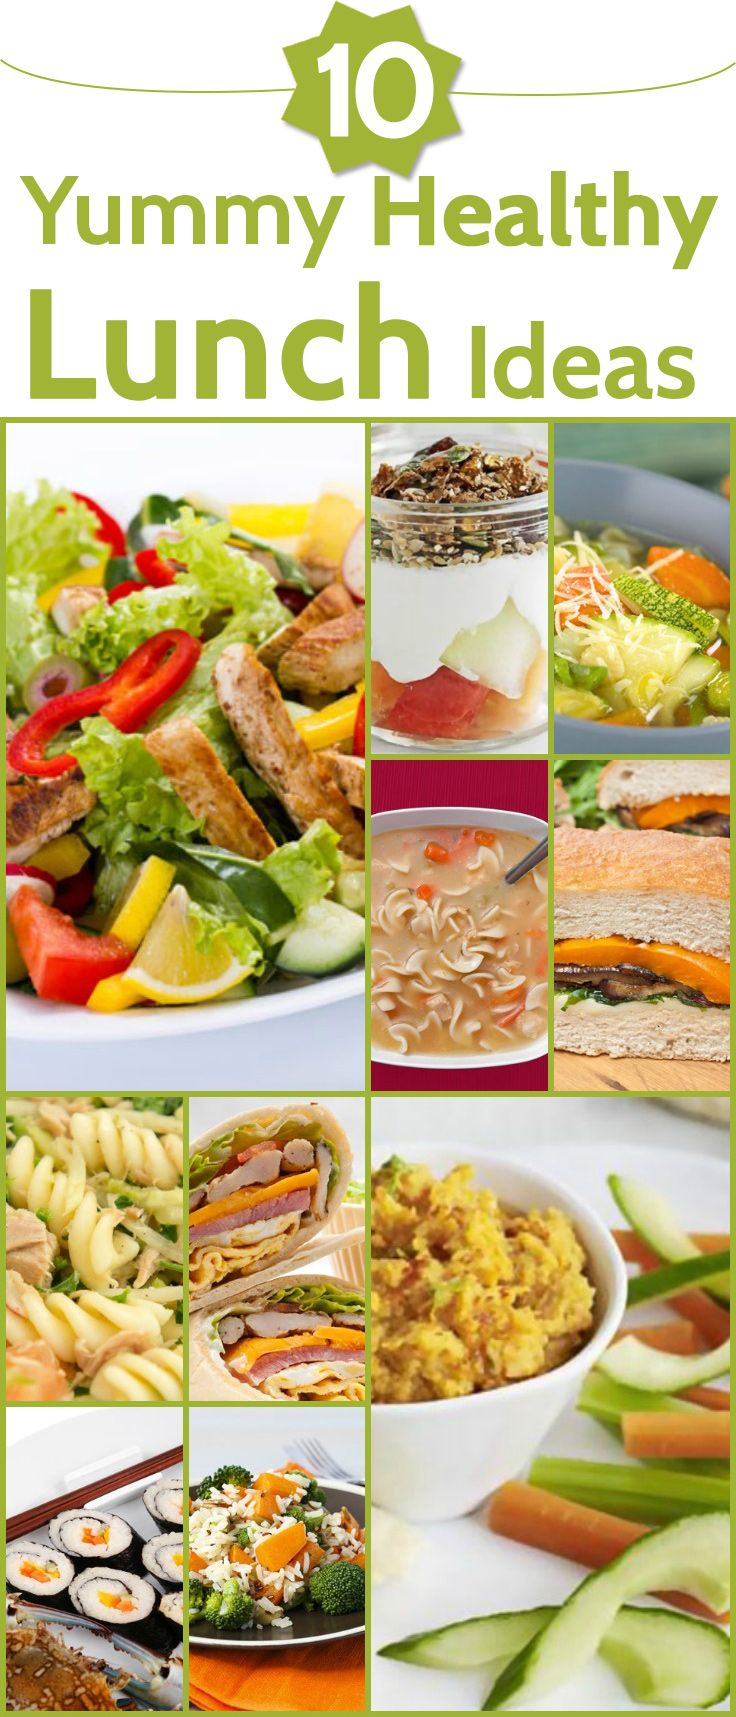 15 Healthy And Delicious 30-Minute Meal Recipes advise